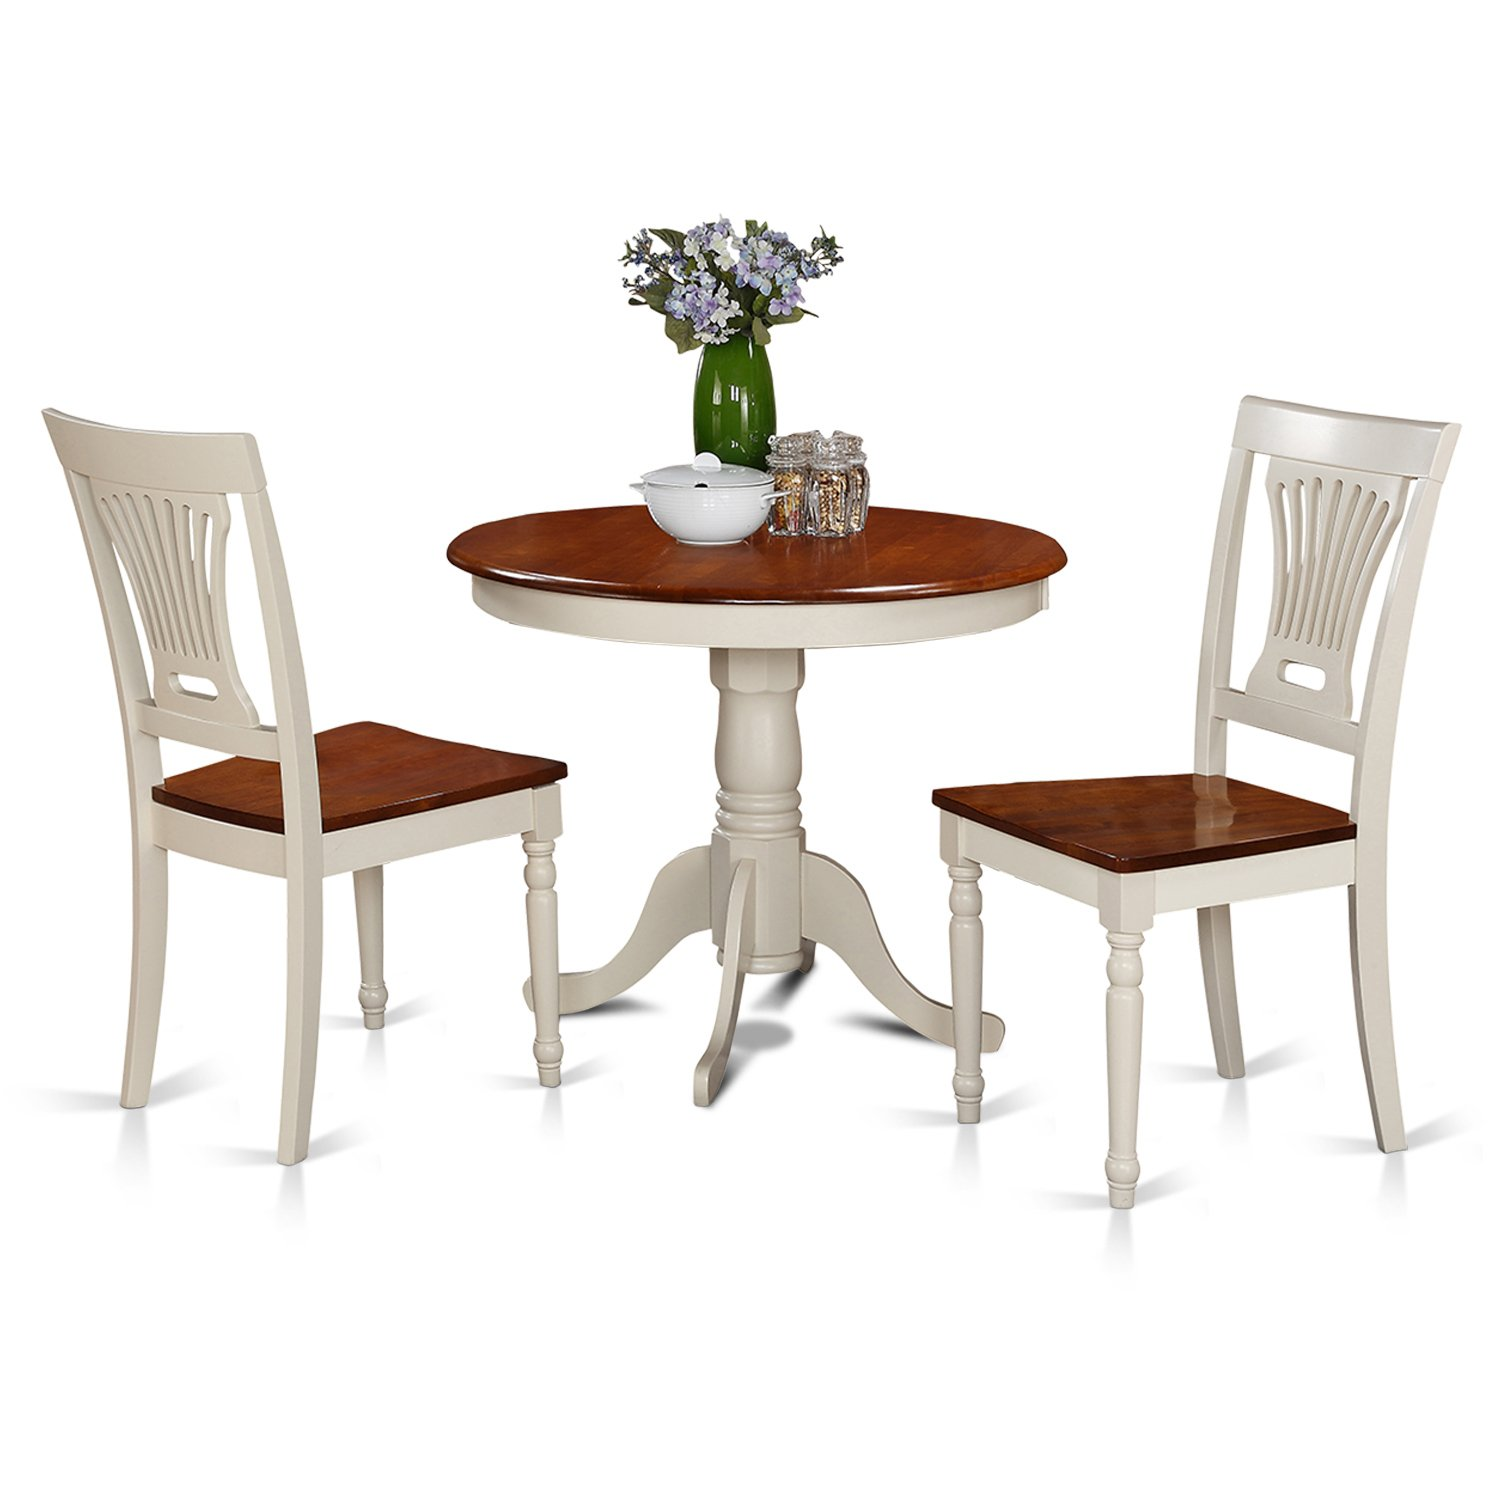 3 Piece Kitchen Nook Dining Set Small Kitchen Table And 2: East West Furniture ANPL3-WHI-W 3-Piece Kitchen Nook